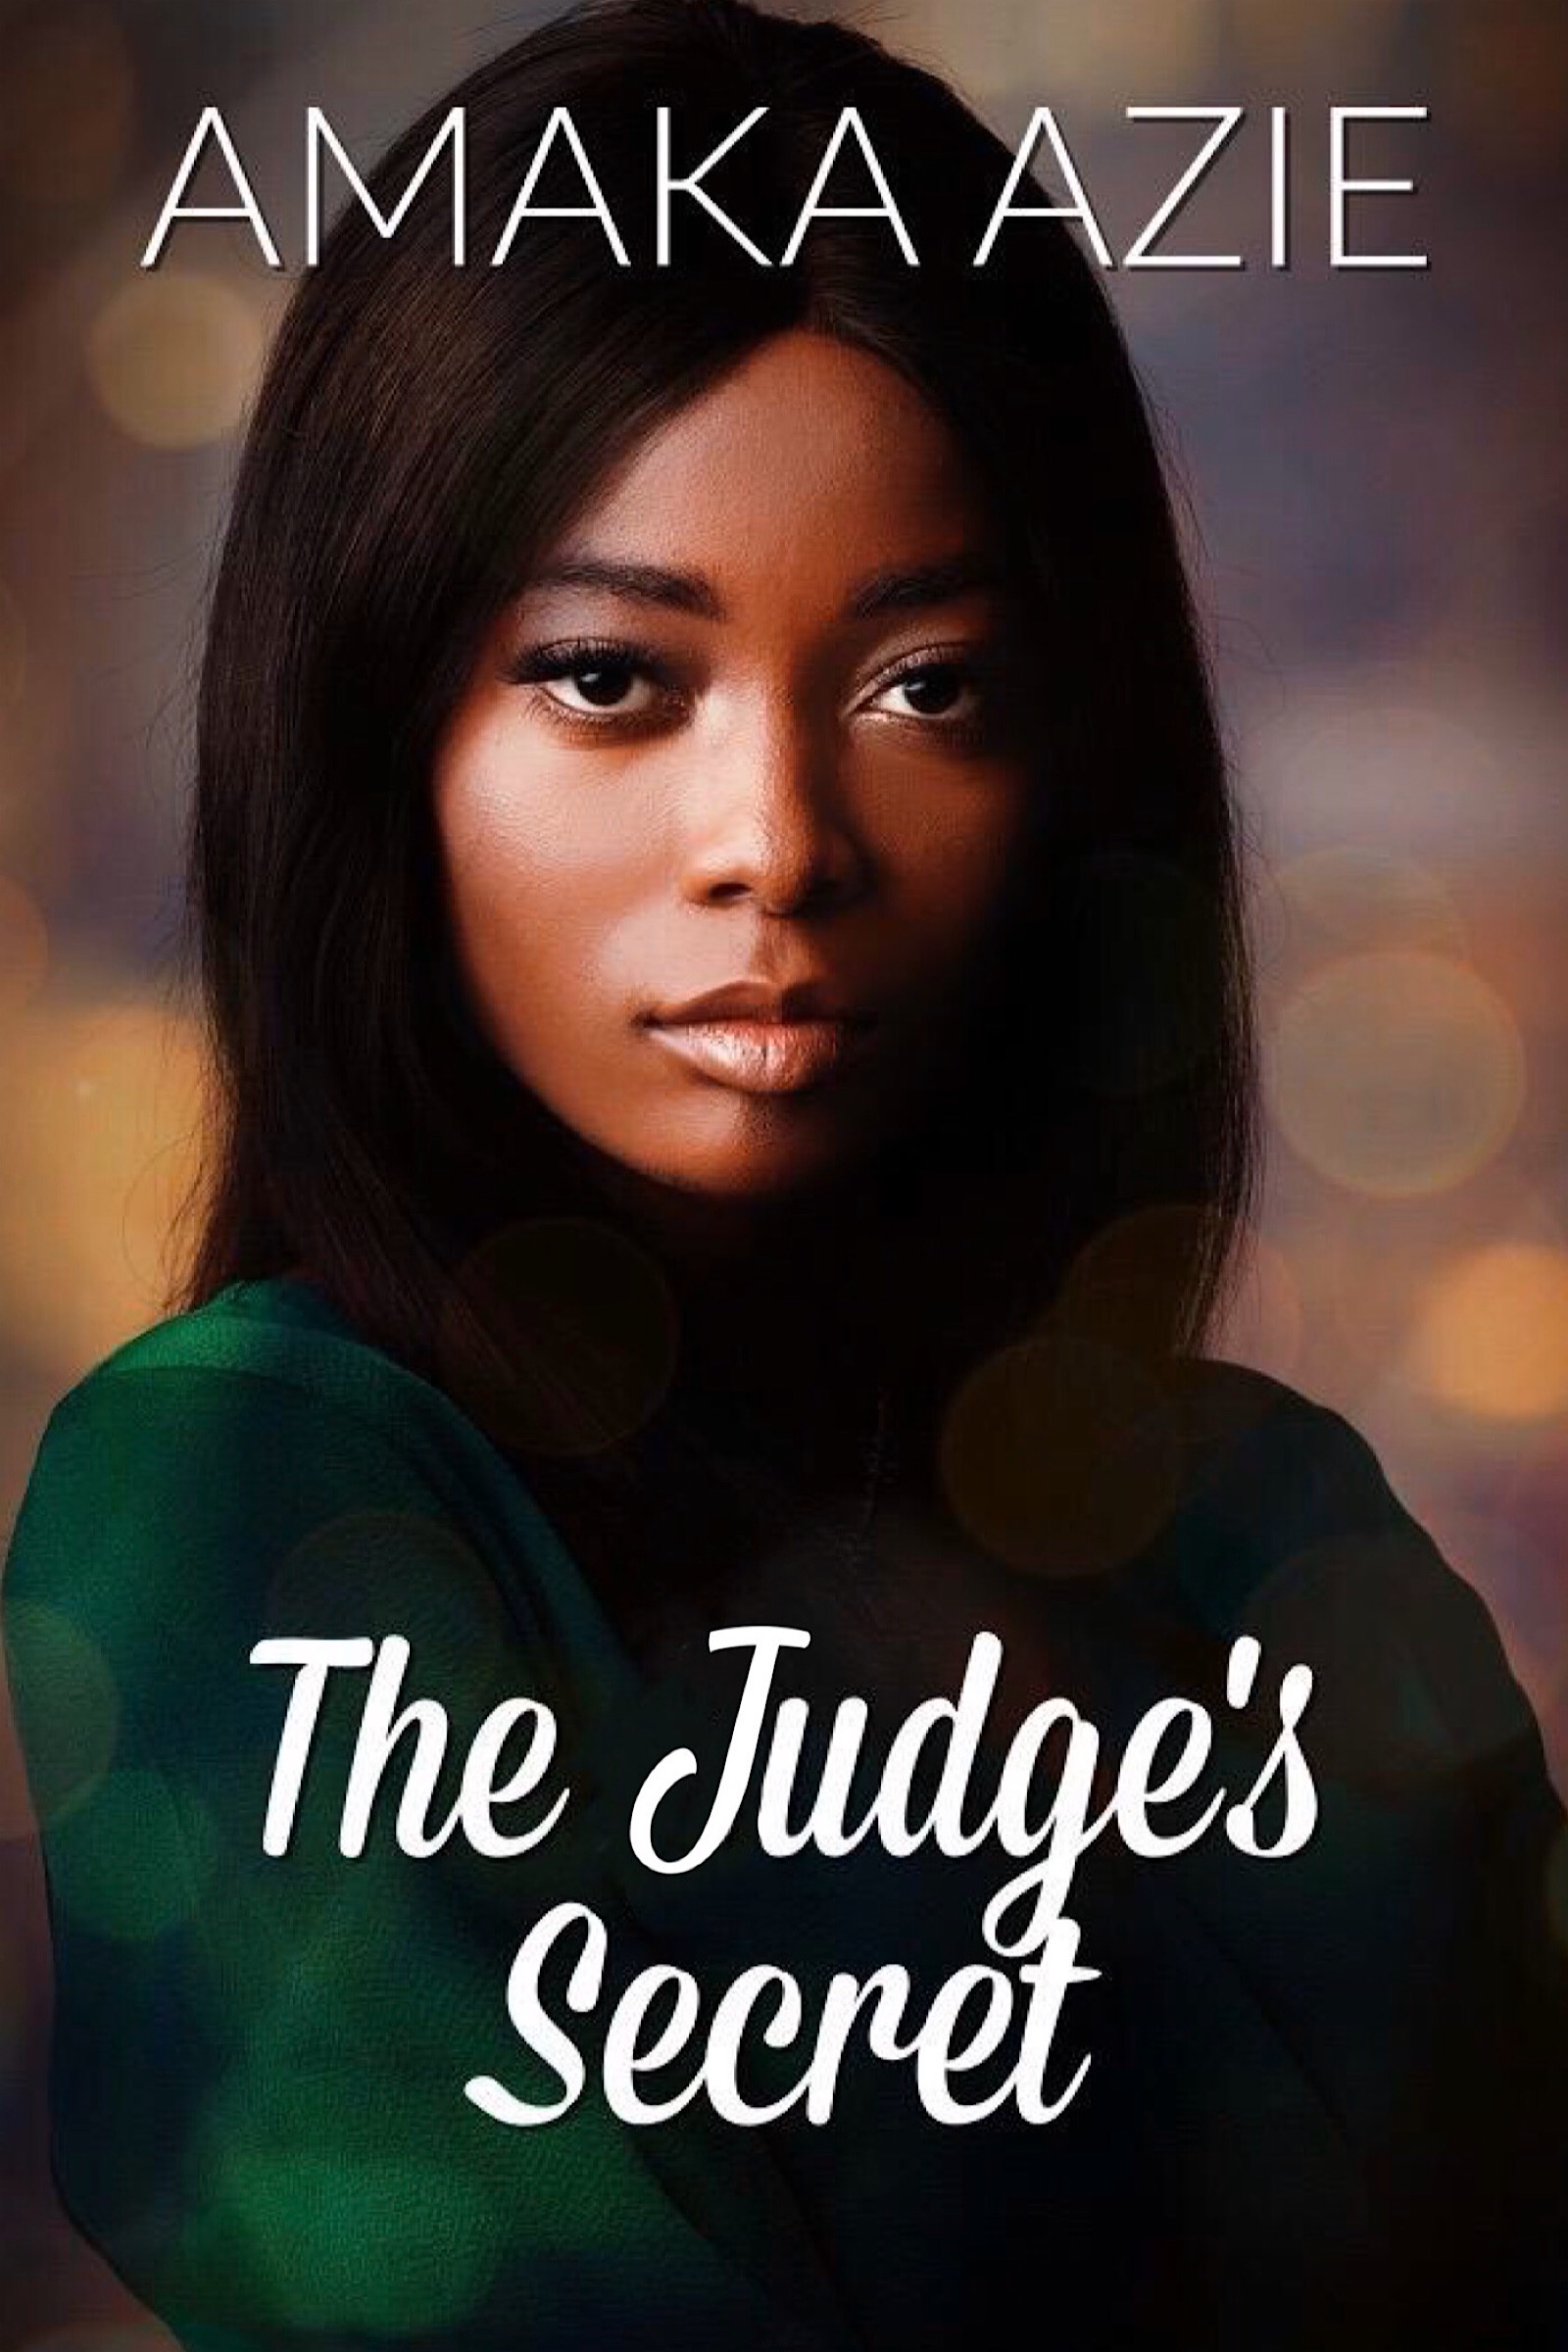 The Judge's Secret by Amaka Azie